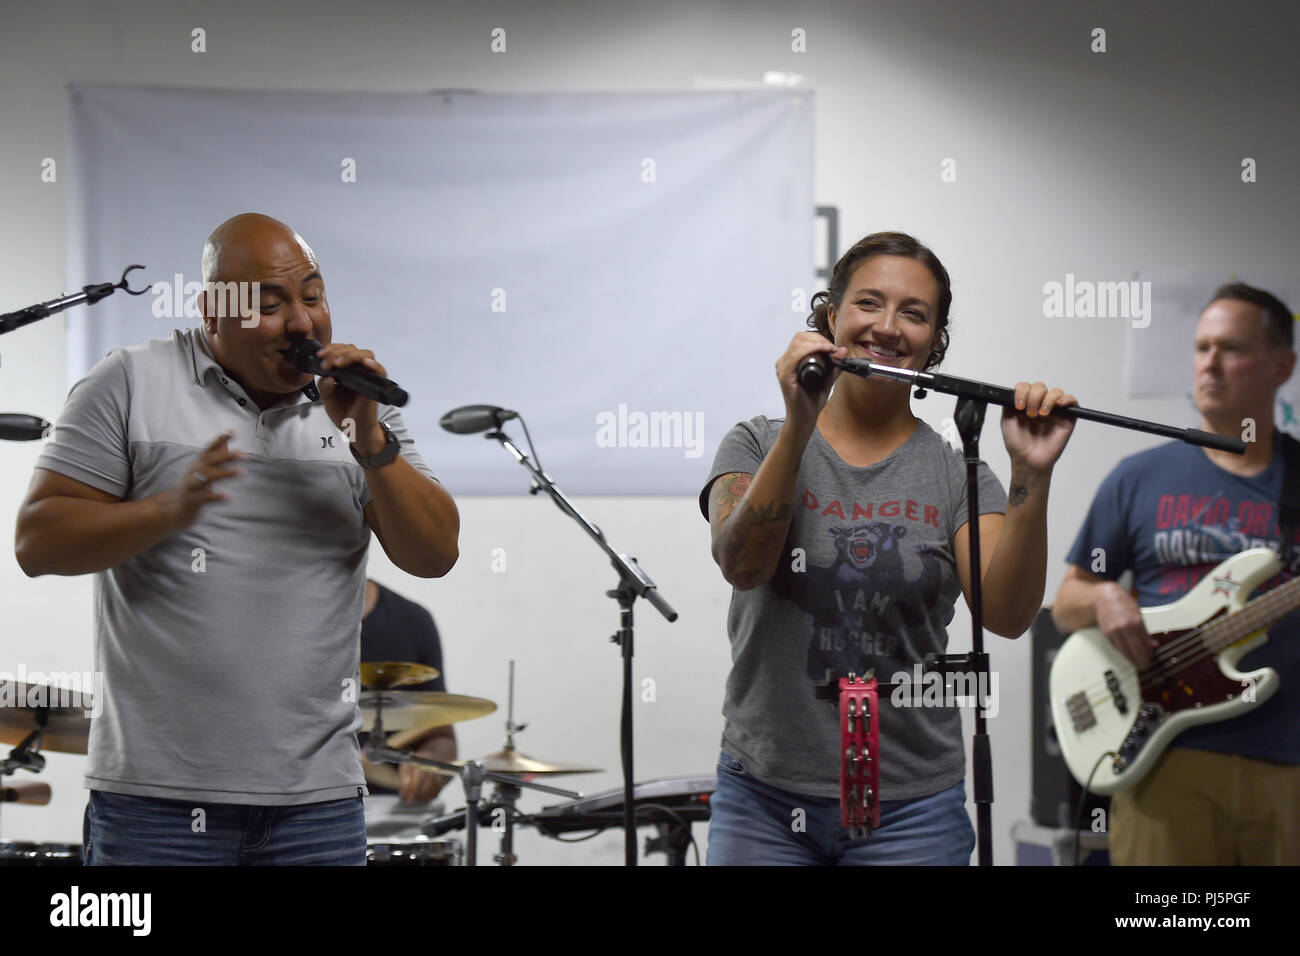 Master Sgt. Quez Vasquez and Staff Sgt. Grace Huntoon, U.S. Air Forces Central Command Band lead vocalists, perform for deployed service members at an undisclosed location in Southwest Asia, Aug. 24, 2018. The USAFCENT Band rotates several ensembles through the area of responsibility that perform a wide variety of musical styles to appeal to audiences of all ages and backgrounds. (U.S. Air Force photo by Staff Sgt. Dana J. Cable) - Stock Image